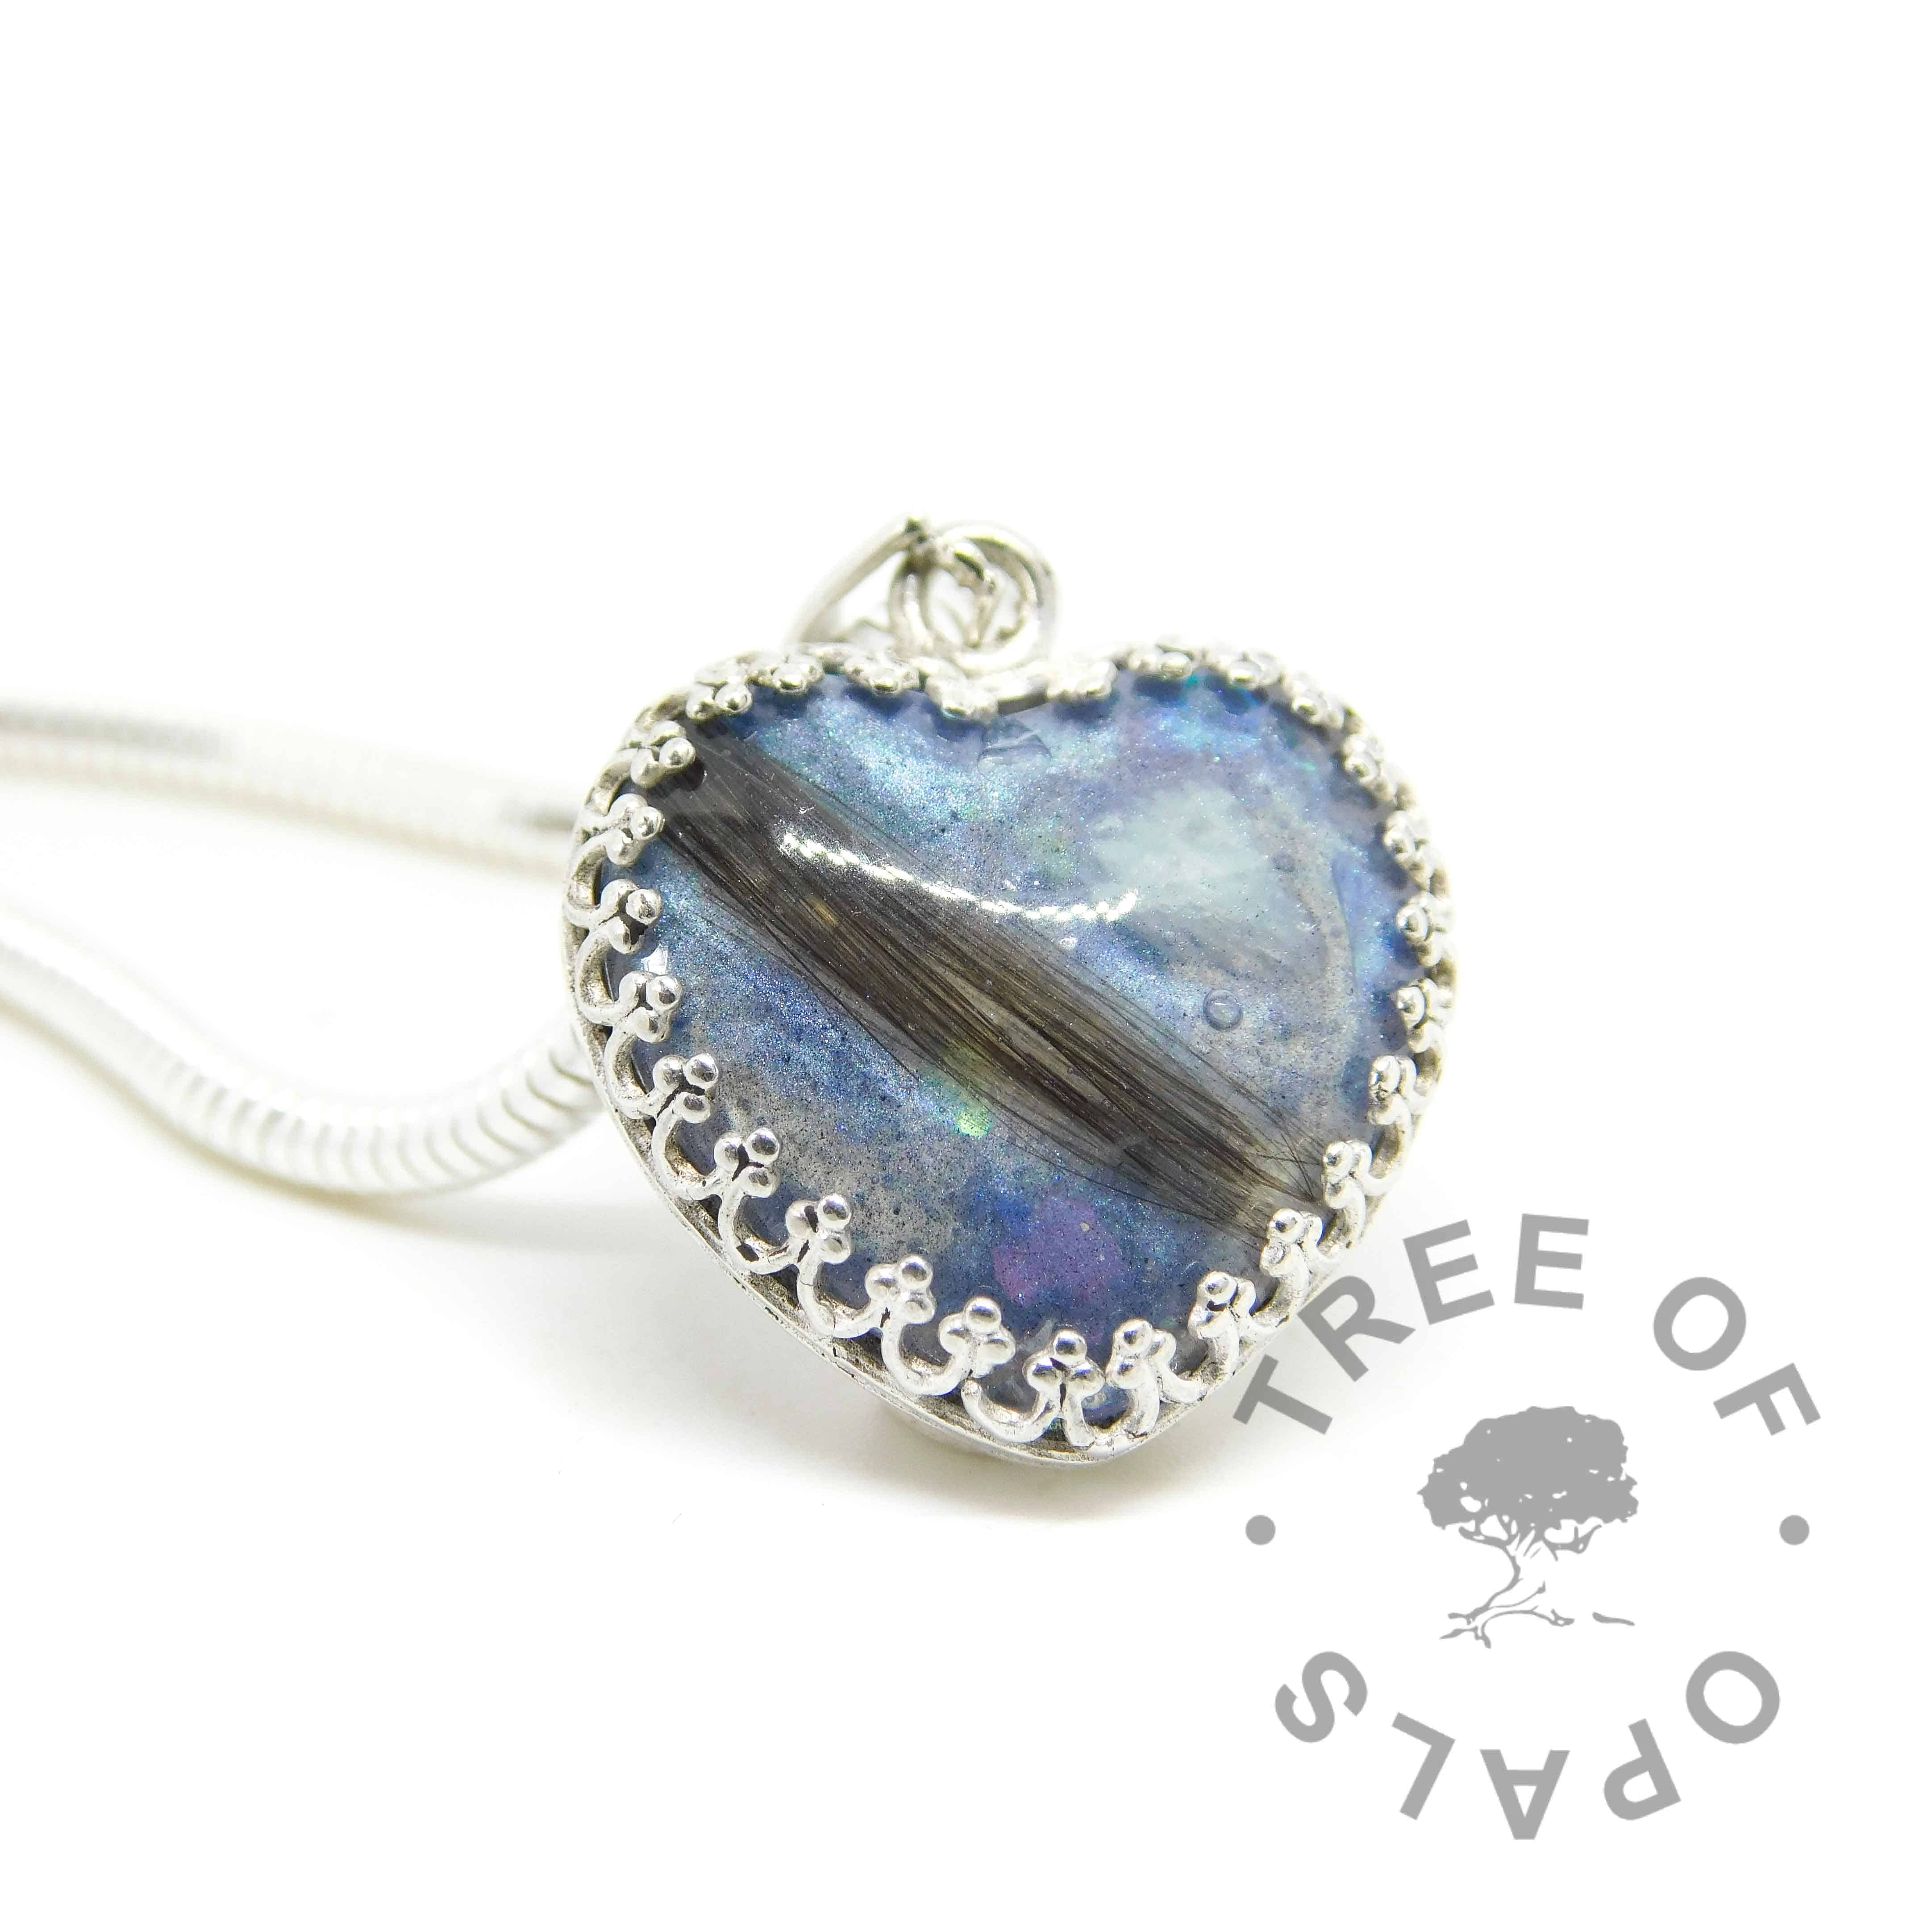 lock of hair heart necklace with aquamarine March birthstone and Aegean blue resin sparkle mix. 18mm heart with solid sterling silver crown point setting. Shown with wide snake chain upgrade. Copyright watermarked image